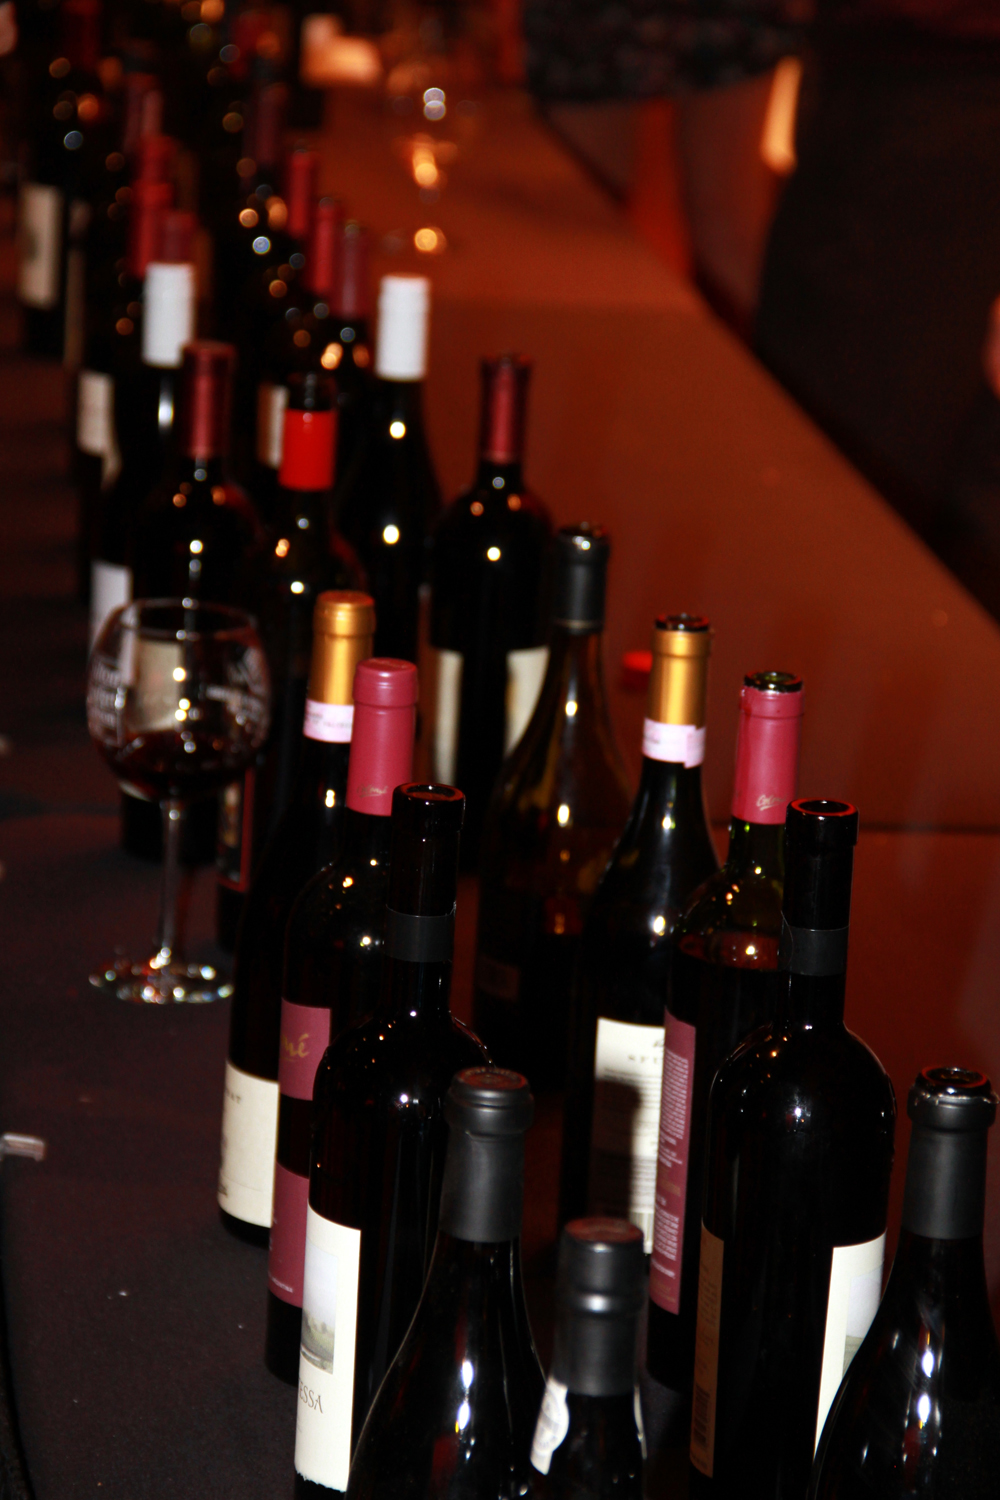 A wide variety of wines to try at Vintage in the Valley. (2011)